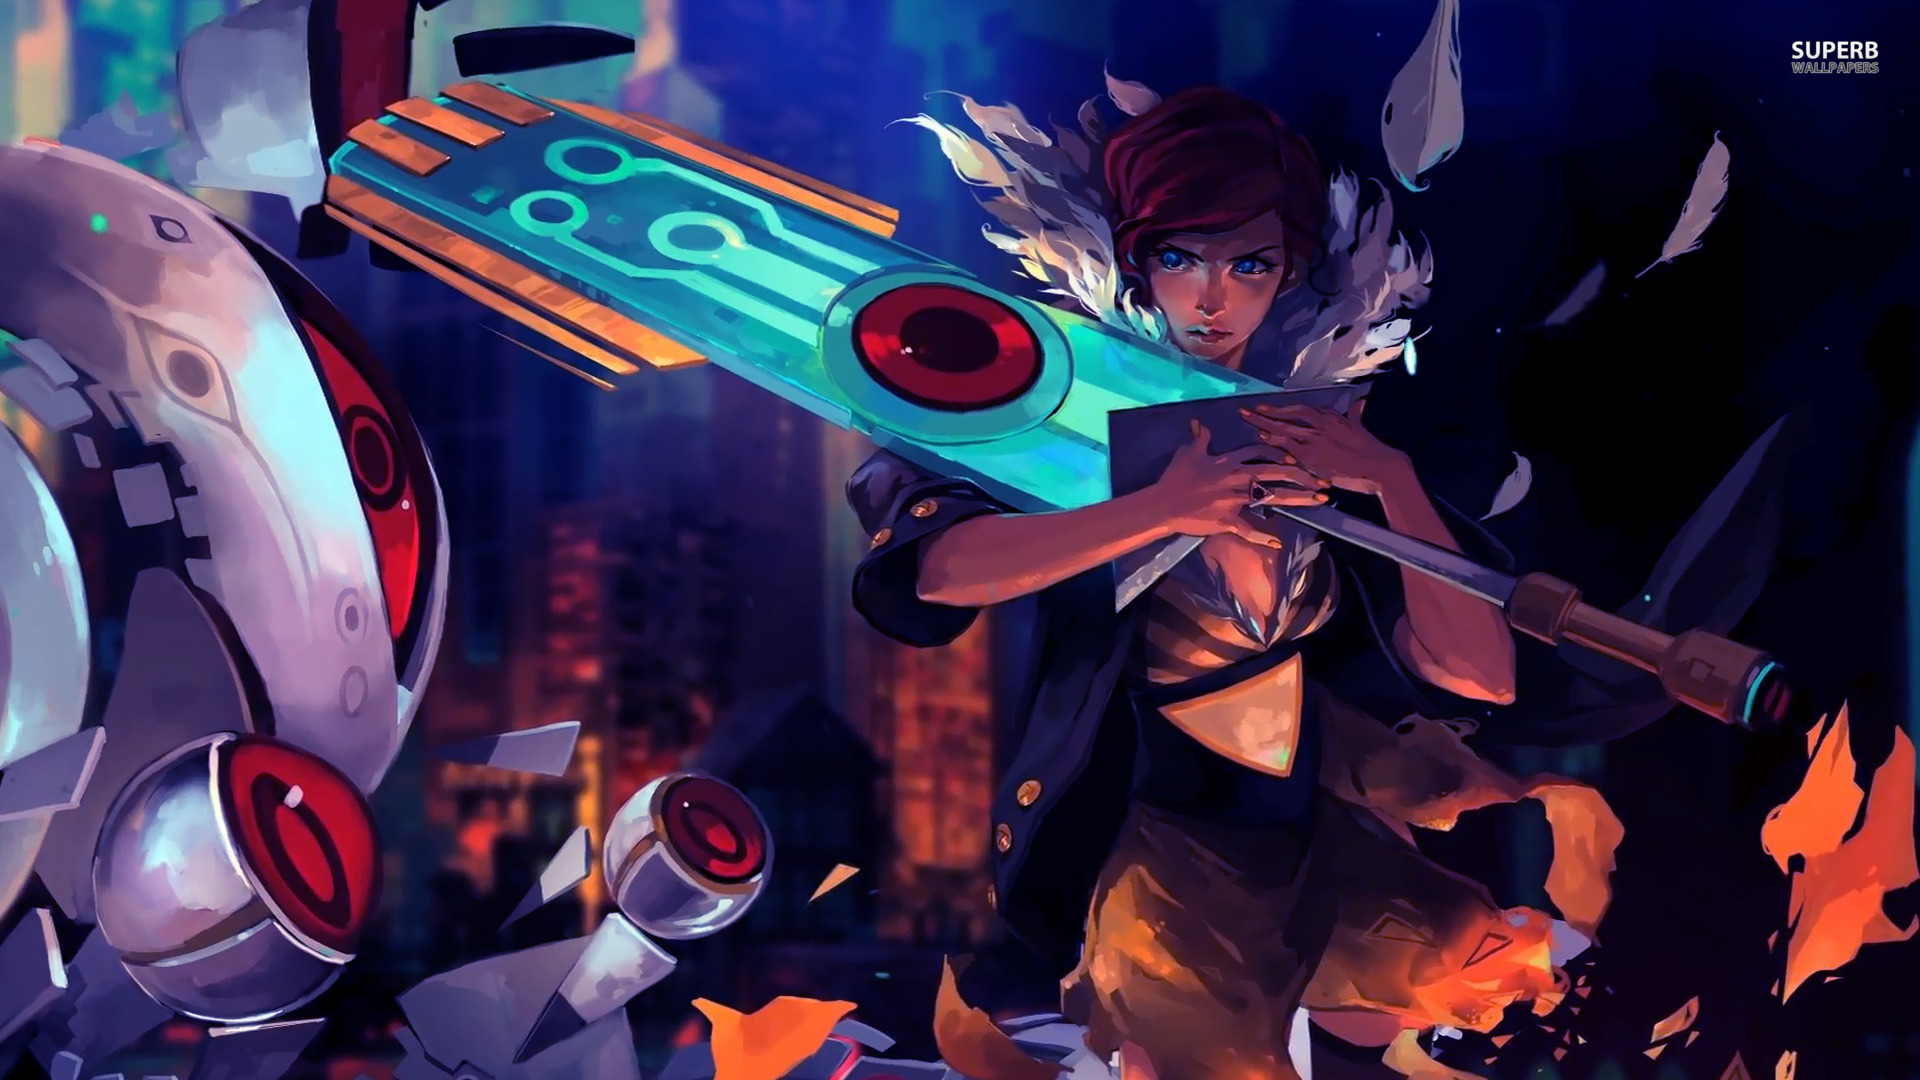 Transistor full hd wallpaper and background image - Wallpaper hd 1920x1080 anime ...